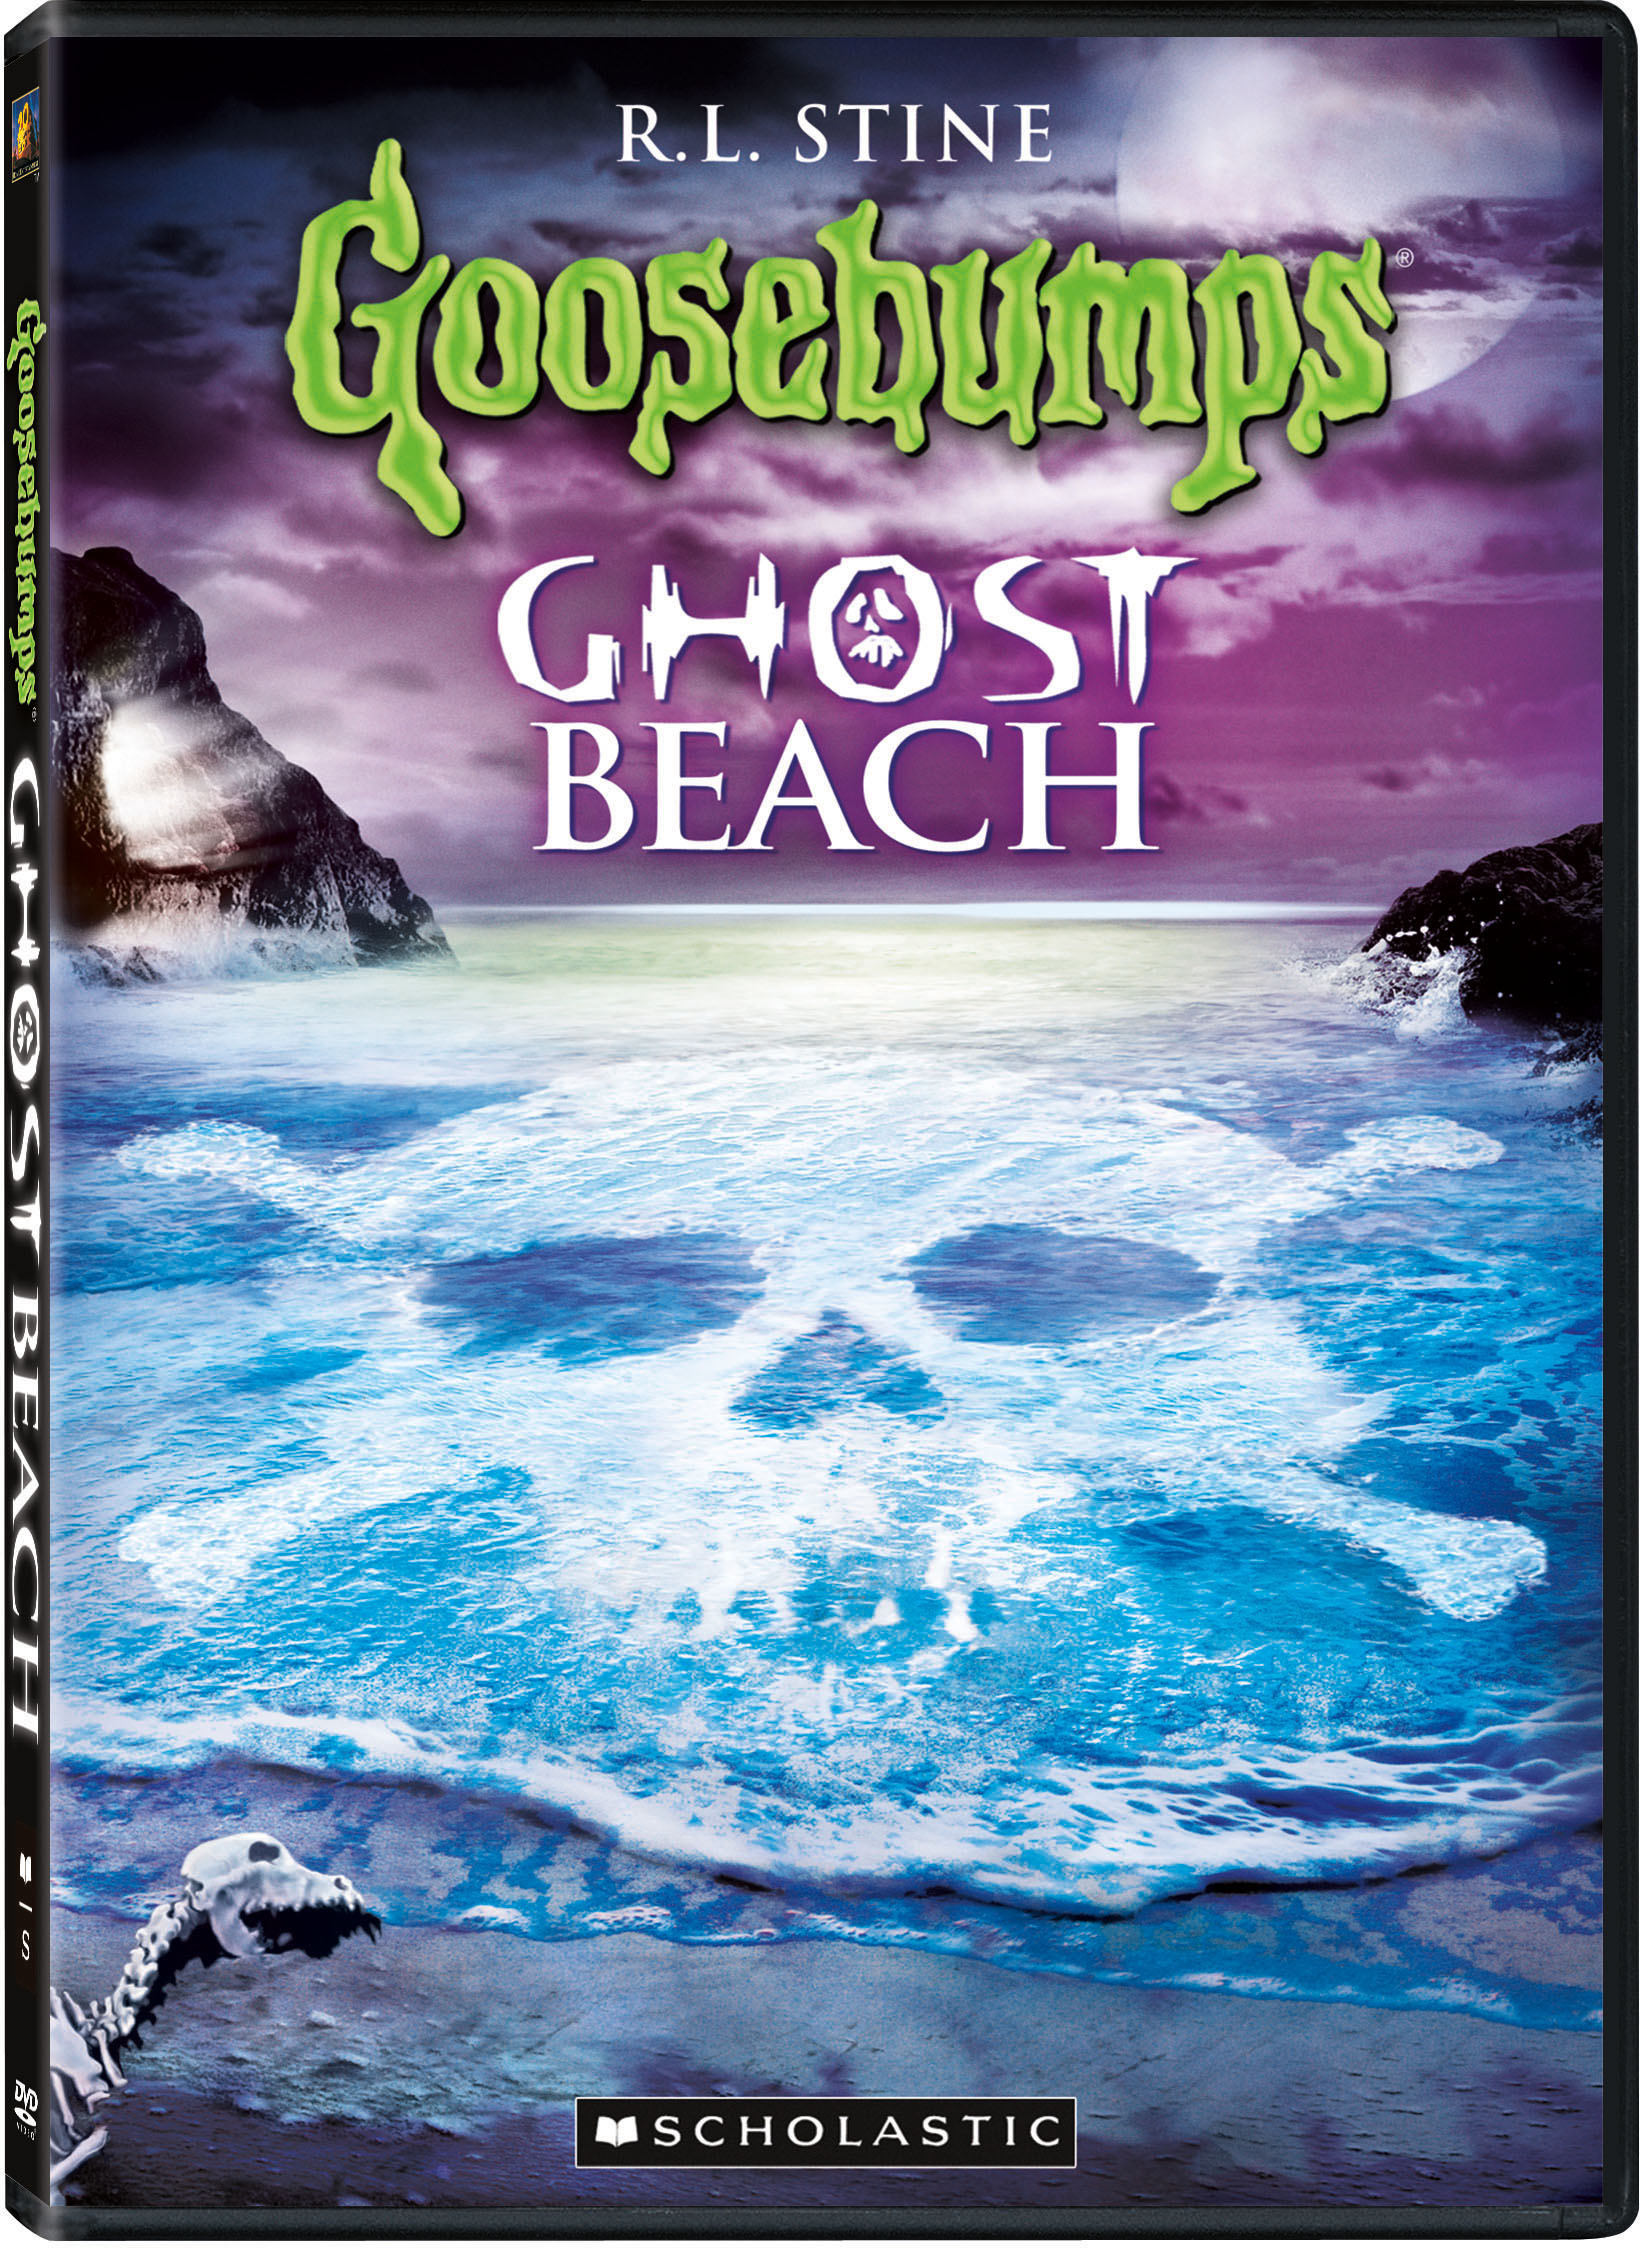 Goosebumps Adventures Attack of the Mutant and Ghost Beach DVD Review & Giveaway